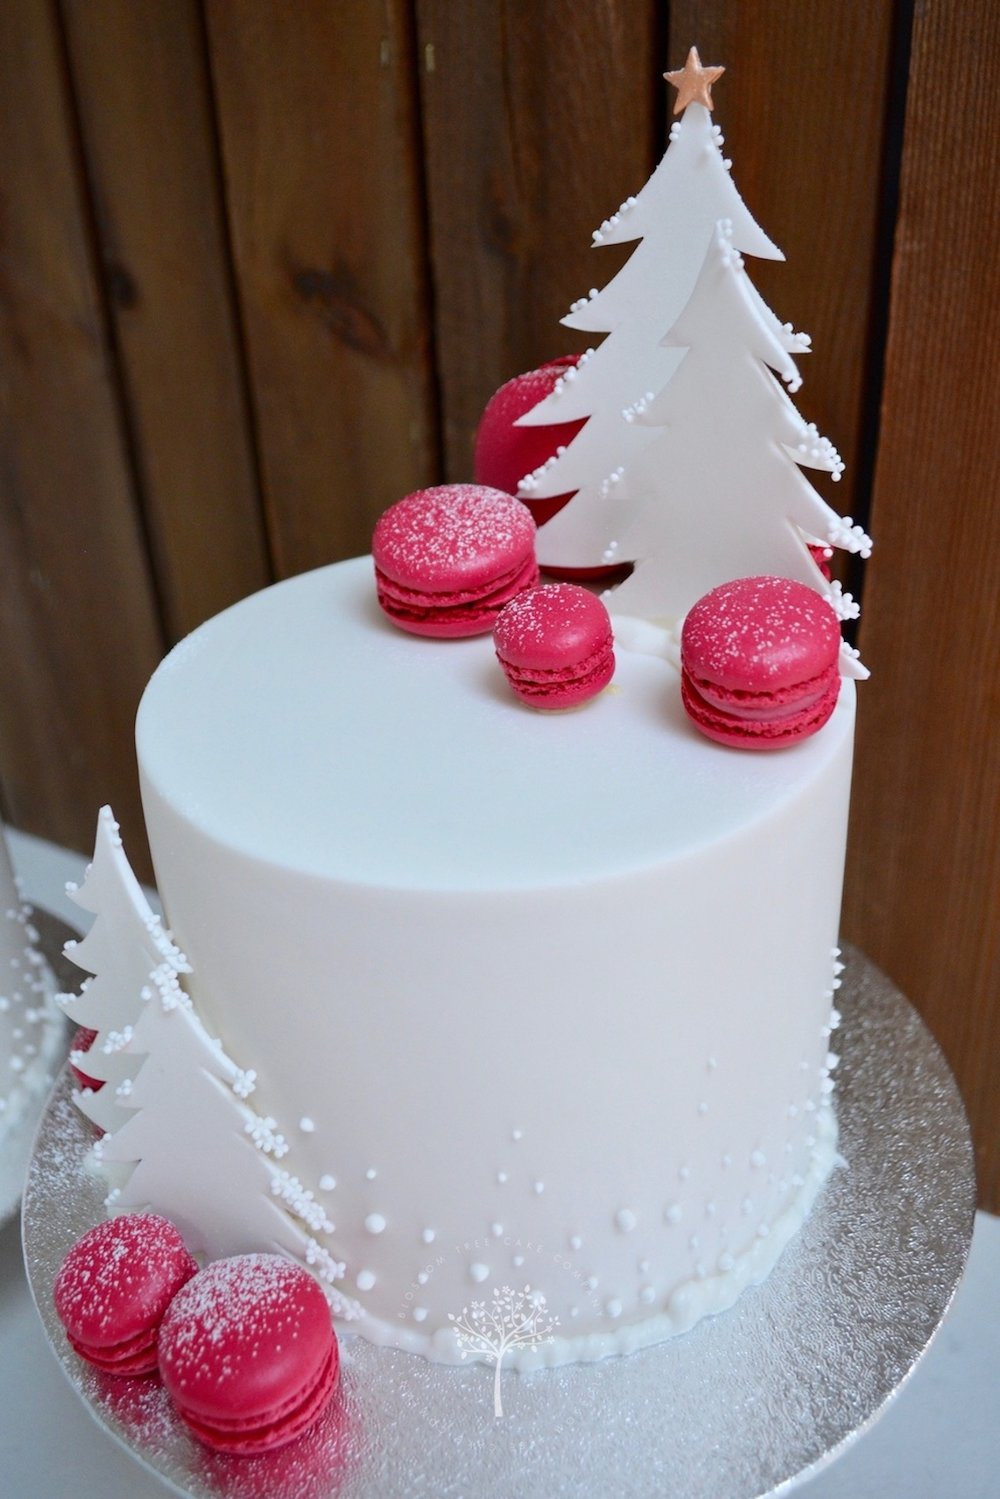 2016 Christmas Cake by Blossom Tree Cake Company Harrogate North Yorkshire.jpg